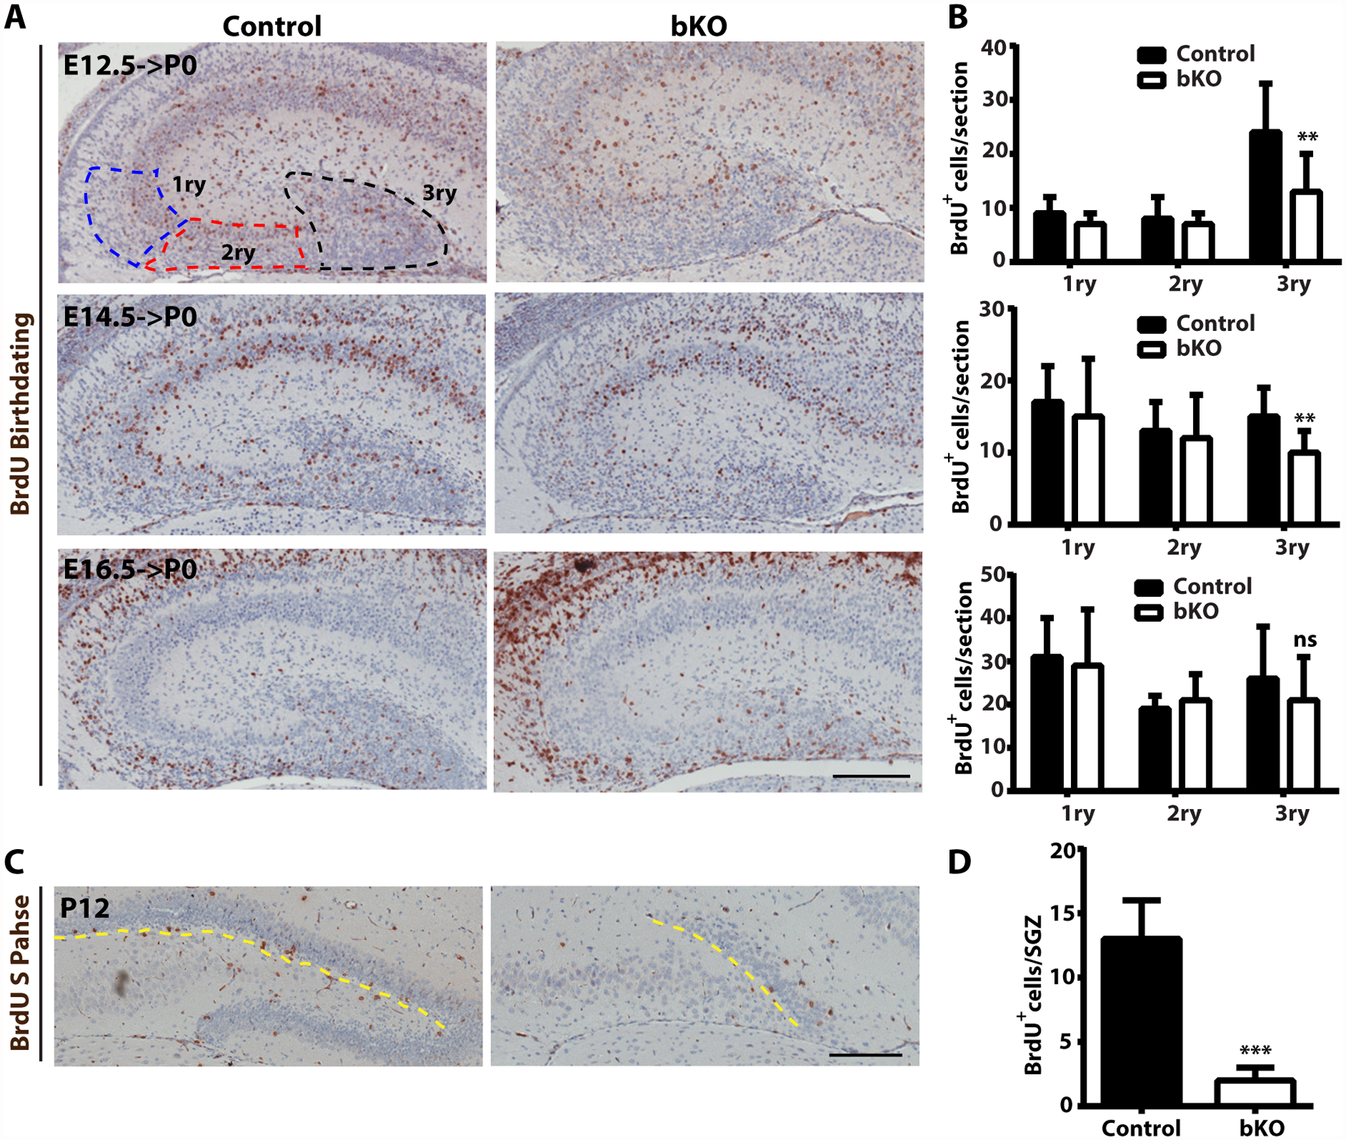 Analysis of neuronal migration in the hippocampus by BrdU labeling.